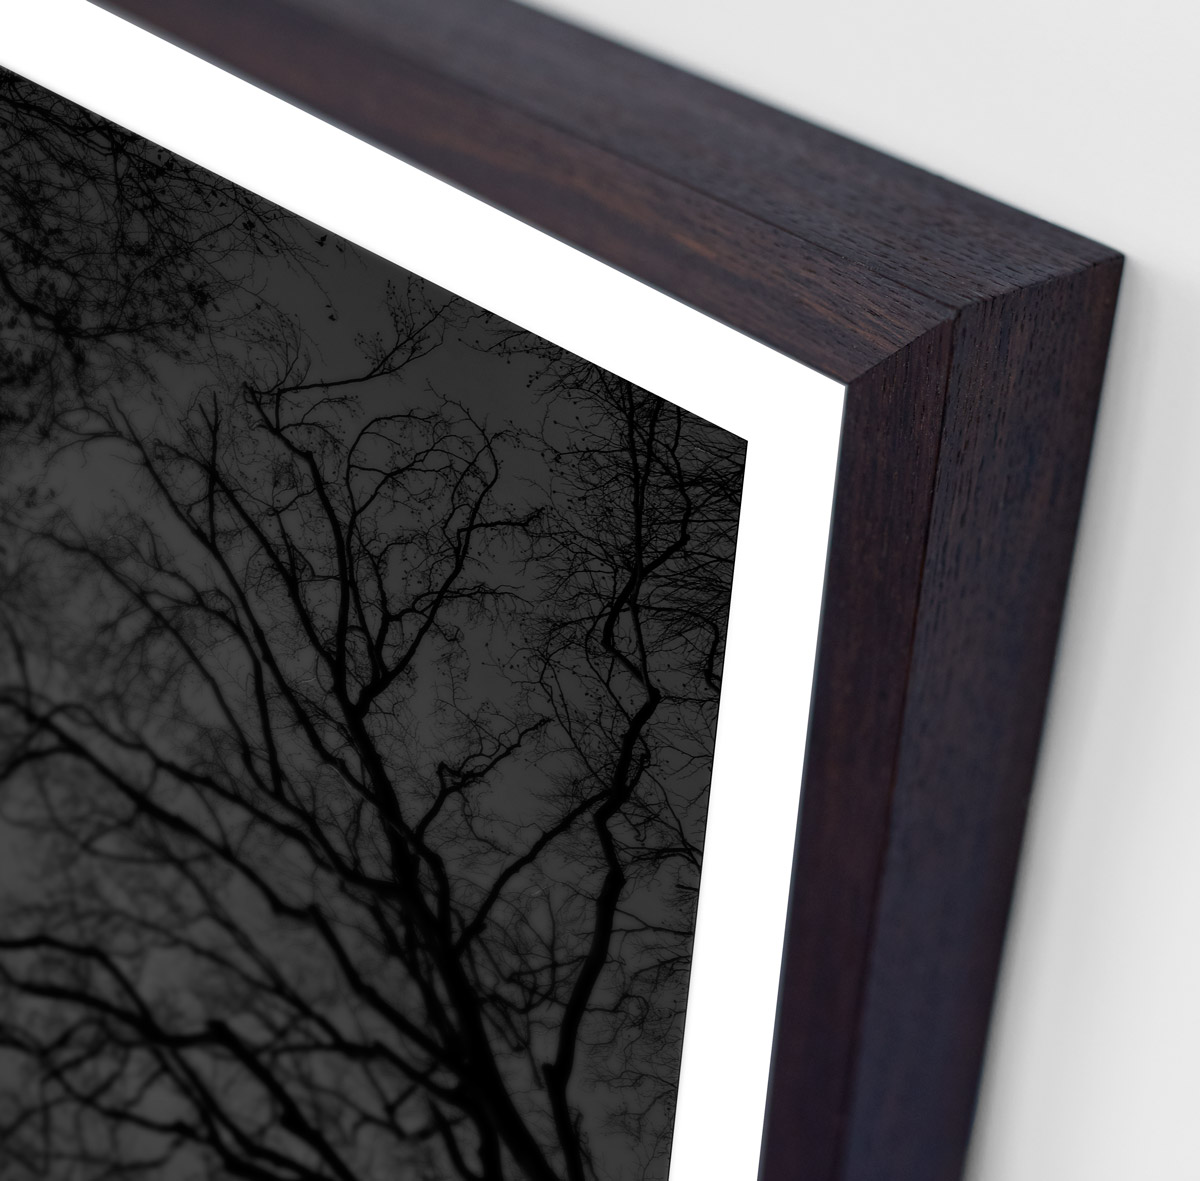 Detail of black and white fine art photography print of bare trees framed in smoked oak size 80×103 cm